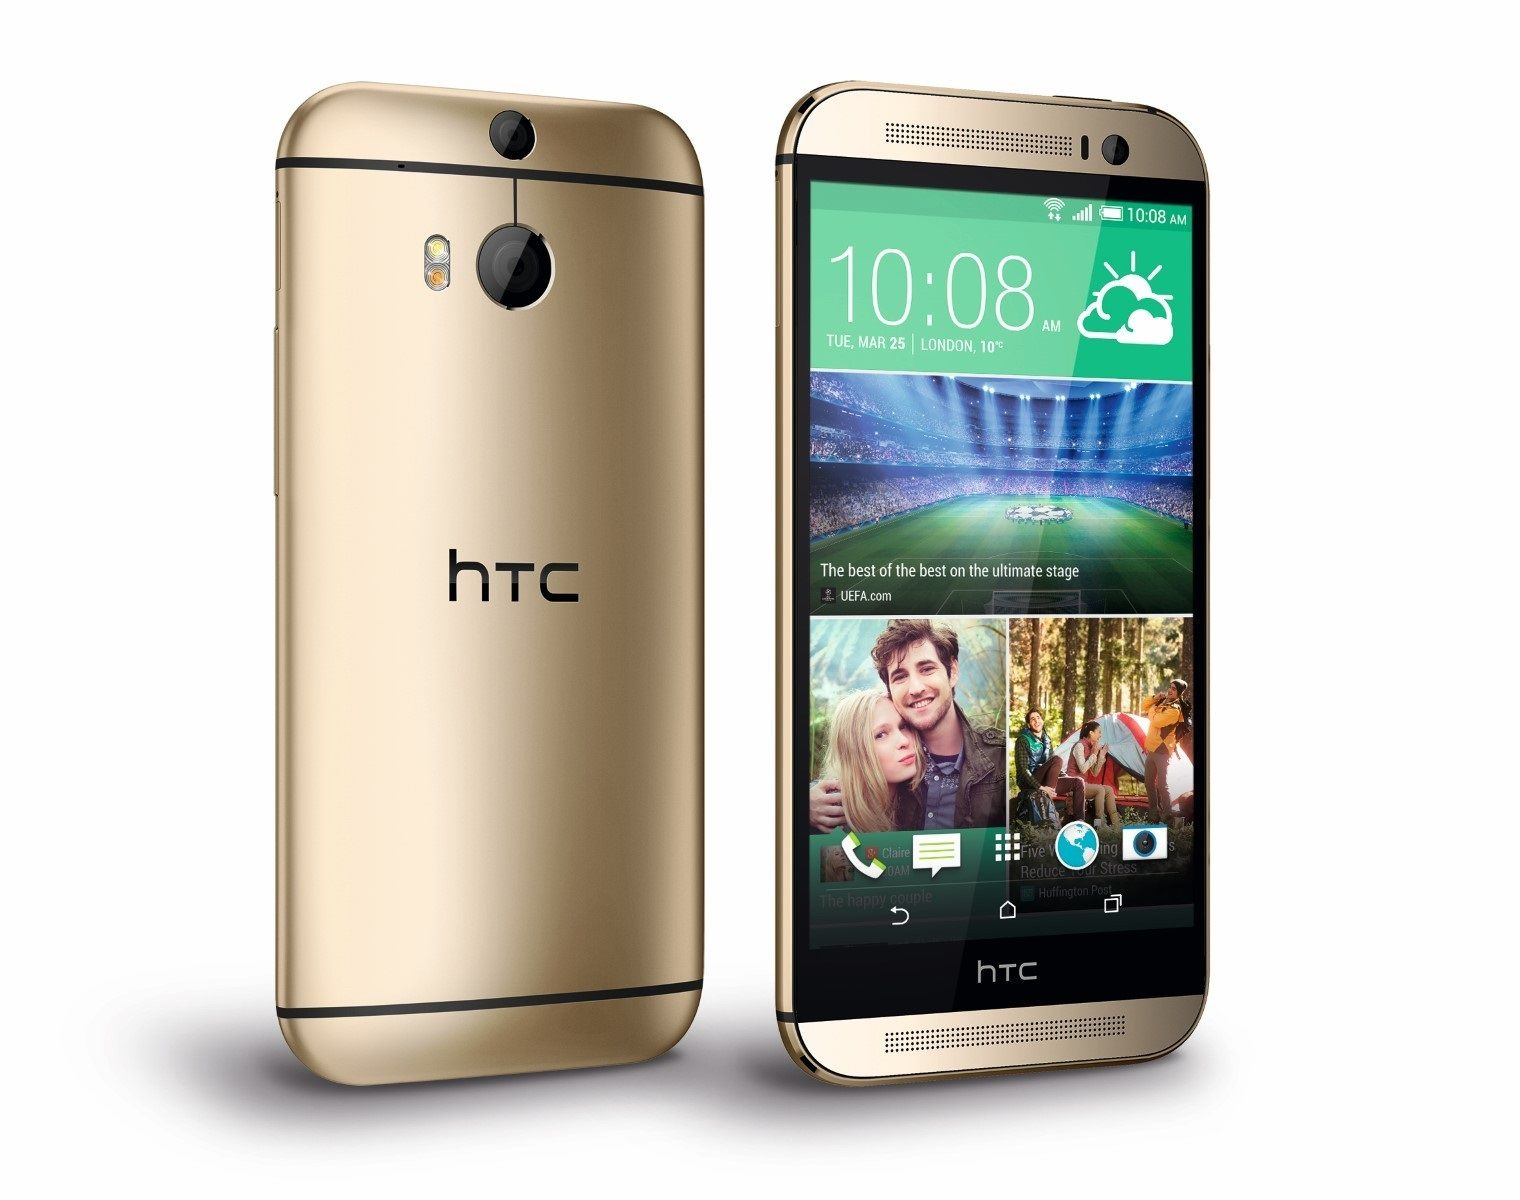 b919e3a363438d79b591445e7c71ce24_All-new-HTC-One-M8-all-the-official-images-5.jpg